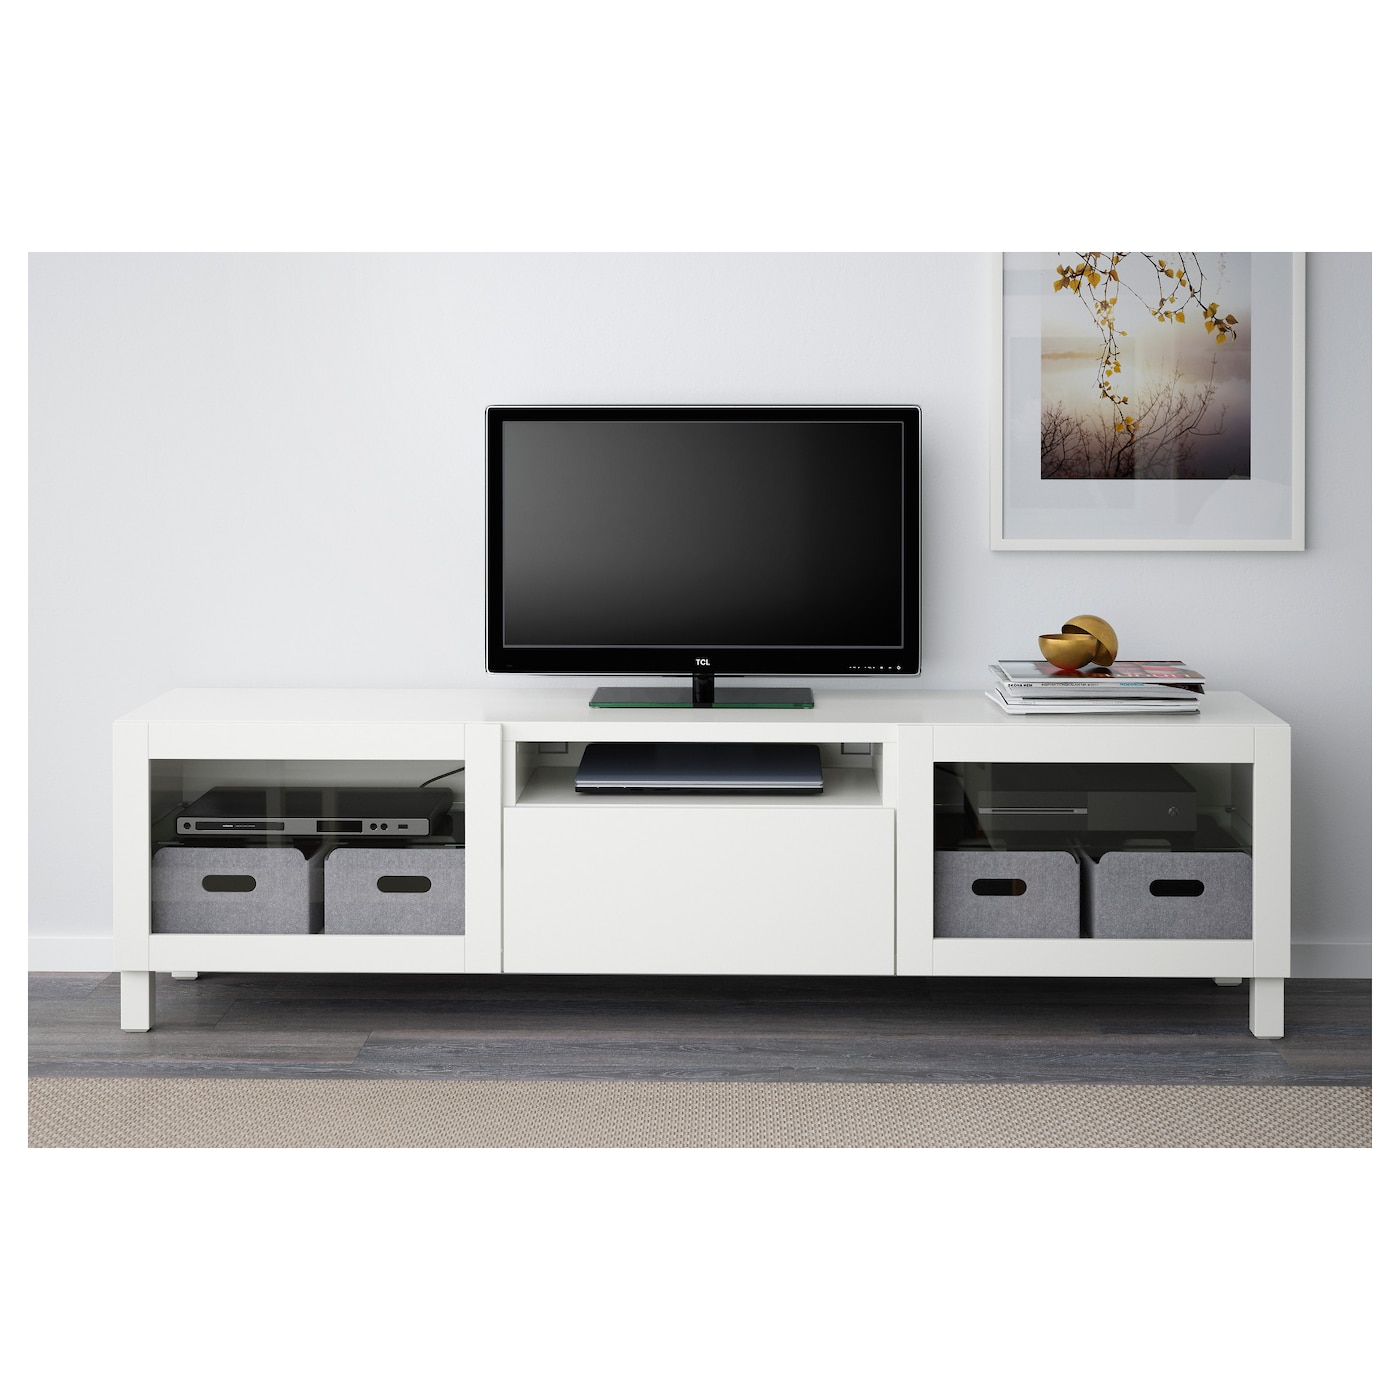 Best Tv Bench Lappviken Sindvik White Clear Glass 180x40x48 Cm Ikea # Meuble Tv Transparent